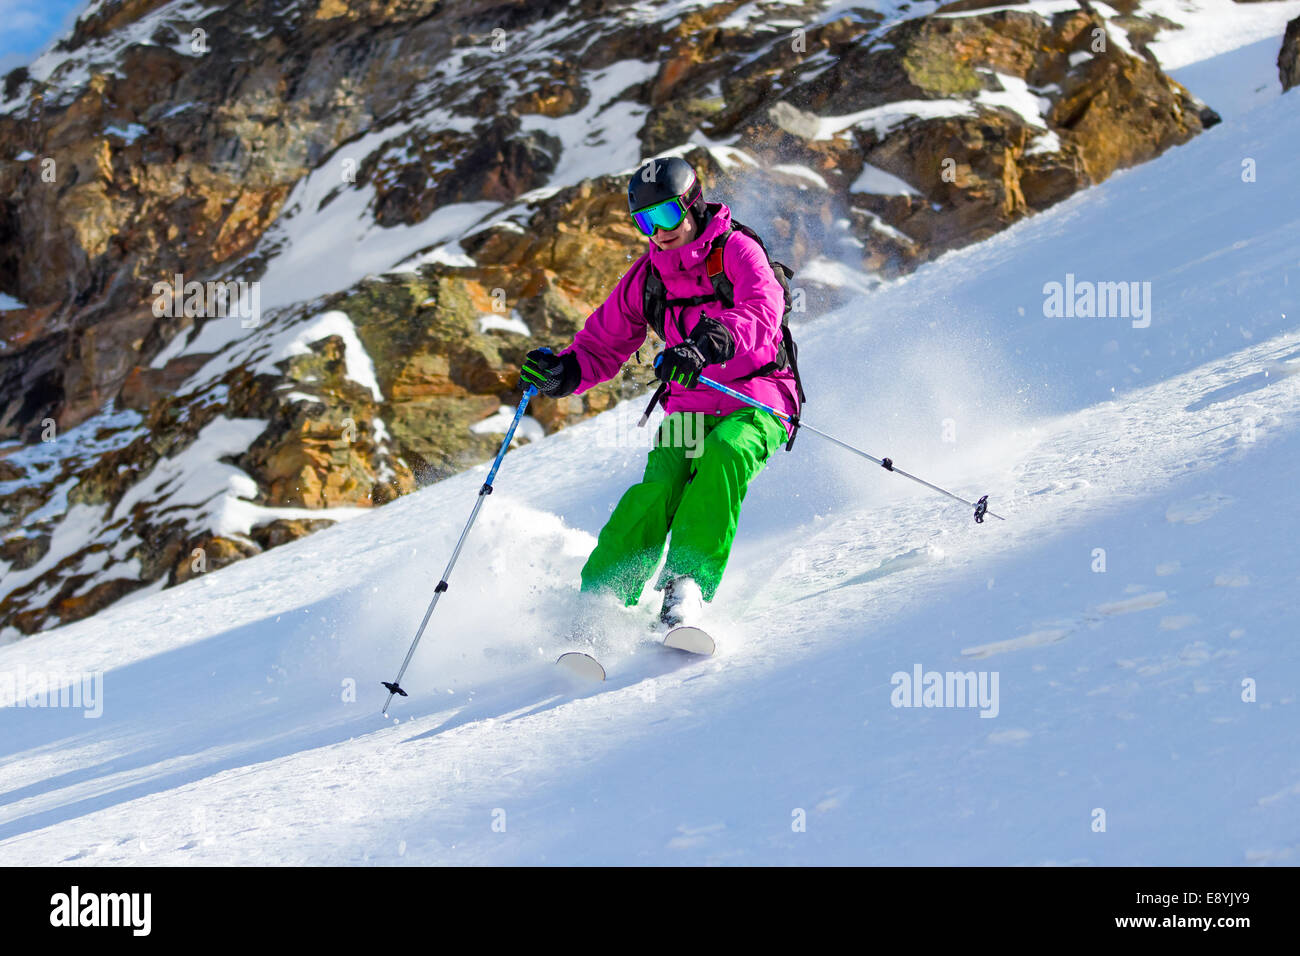 Skier at the turn on mountain steep slope off piste in soft snow on a sunny day on a background of rocks Stock Photo